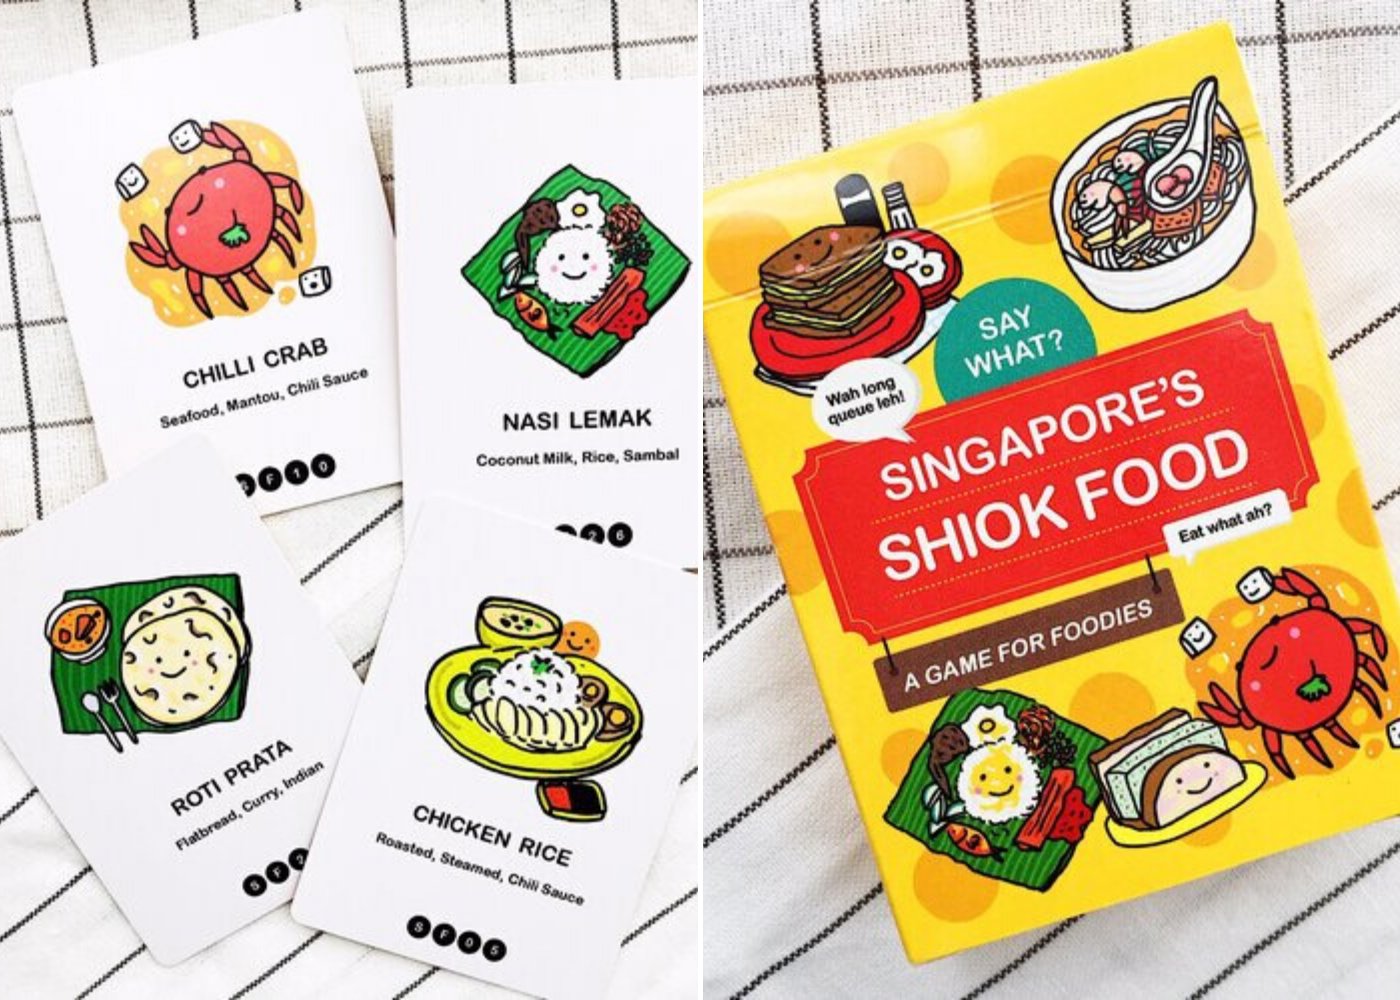 Say What? Singapore's Shiok Food Card Game | alternative card games